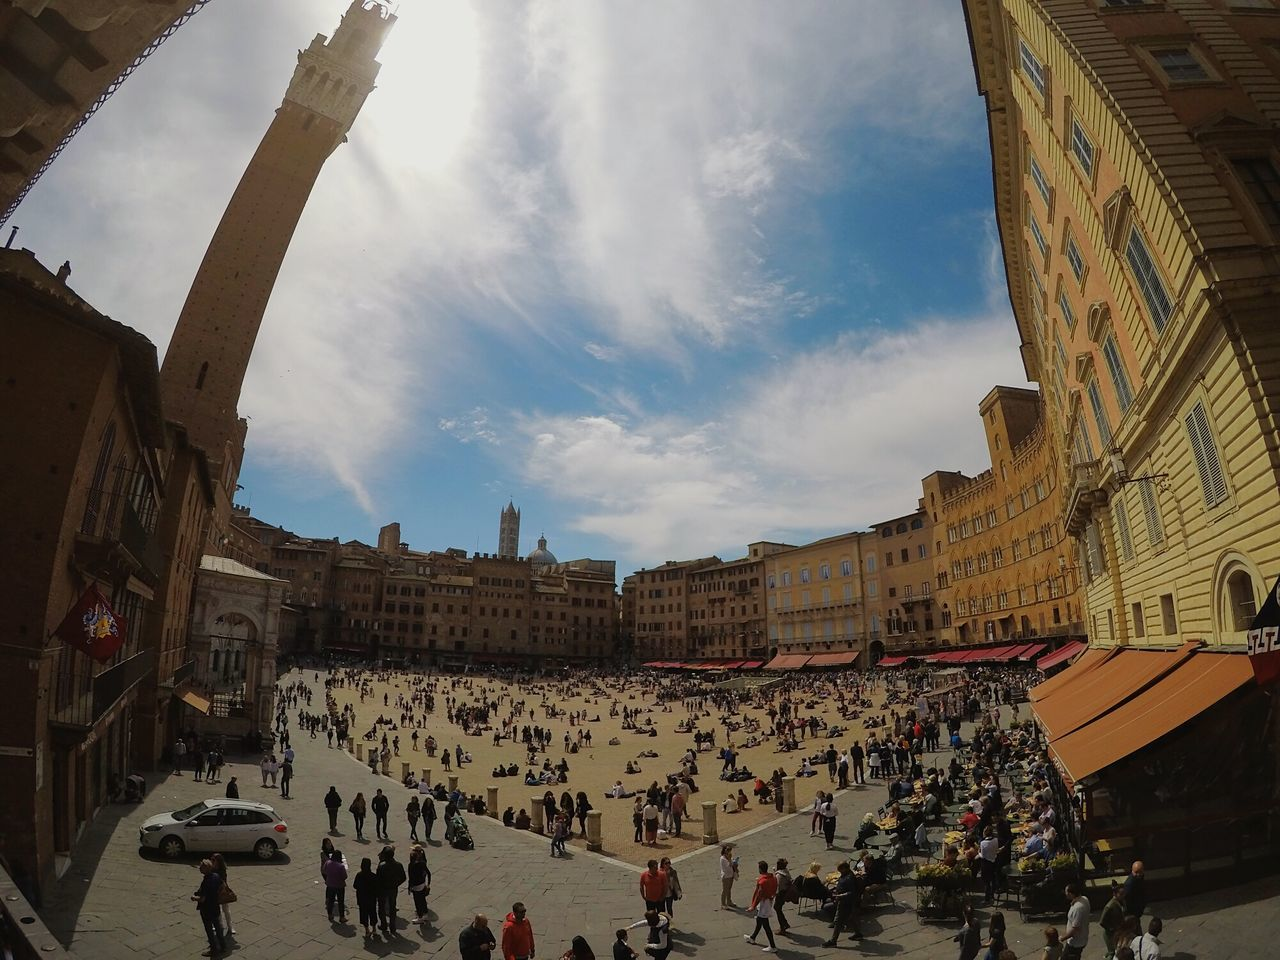 High Angle View Superview Architecture Travel Destinations Siena Tuscany Italy Square Piazzadelcampo People Gopro Hero5black Lifestyles Tourism Swag Amazing EyeEm Best Shots IGDaily Loves_team_members City Cultures Tweegram Outdoors EyeEm Team Followme Sky